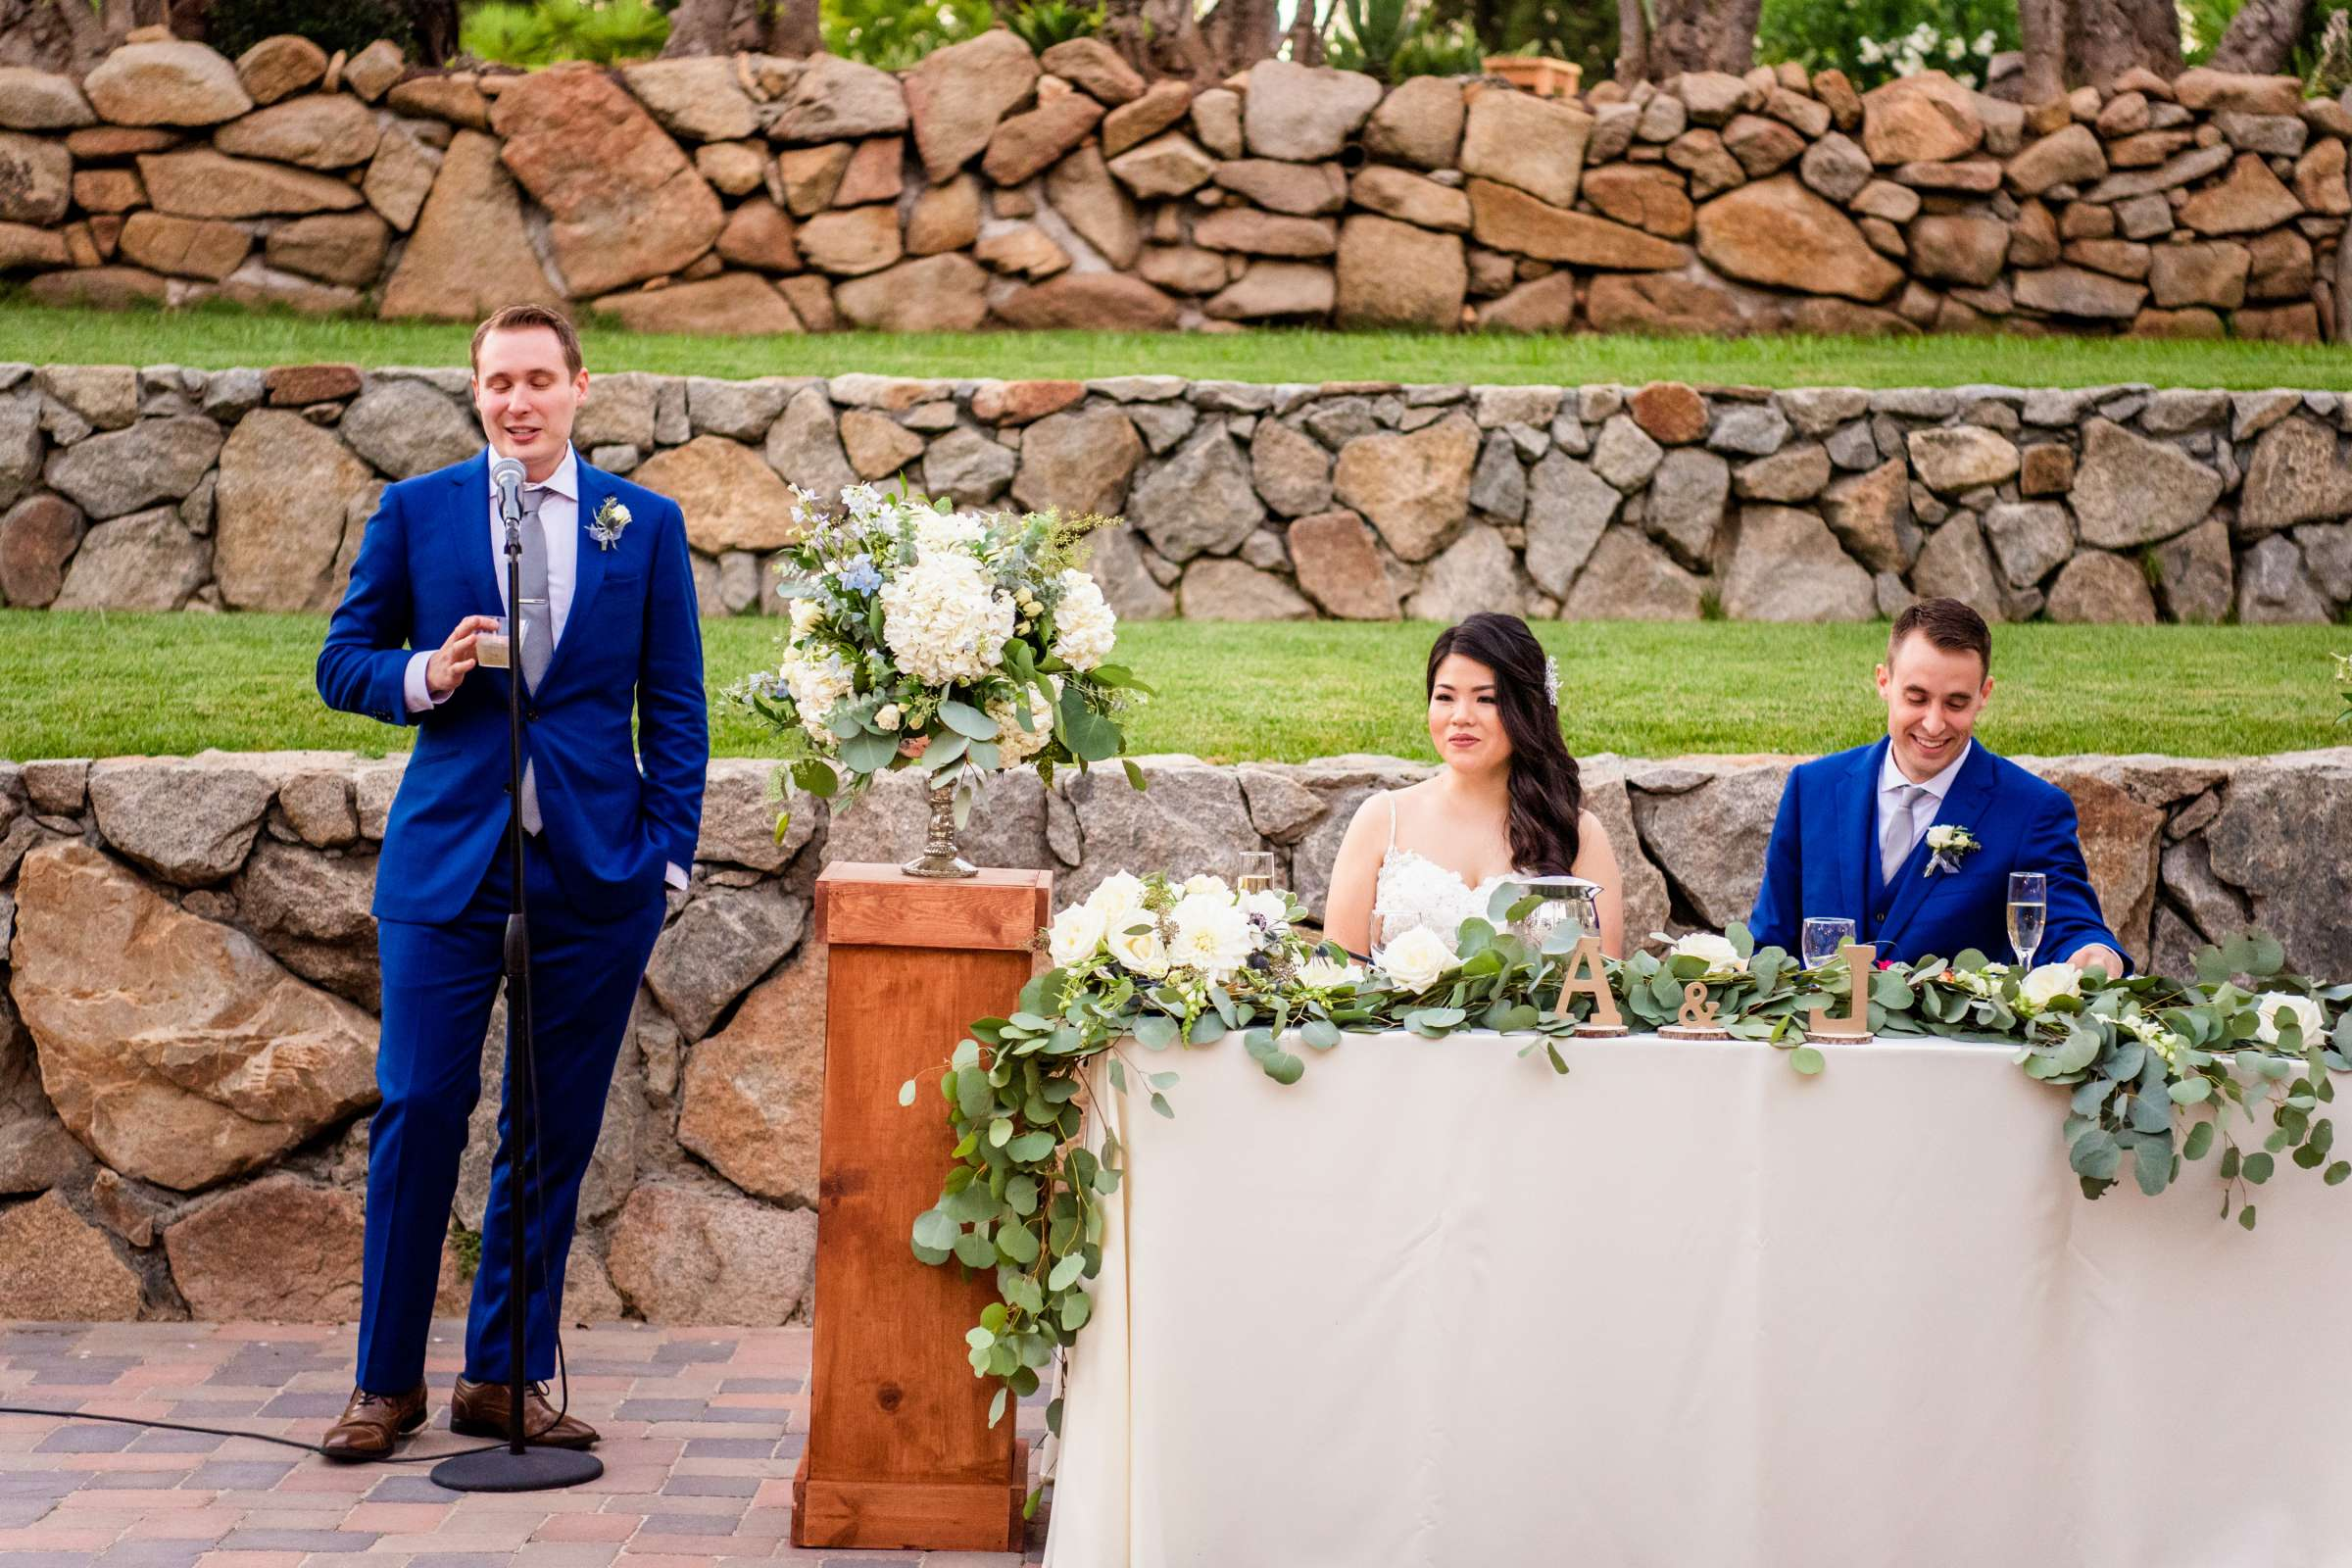 Mt Woodson Castle Wedding coordinated by I Do Weddings, Aya and Jared Wedding Photo #487003 by True Photography